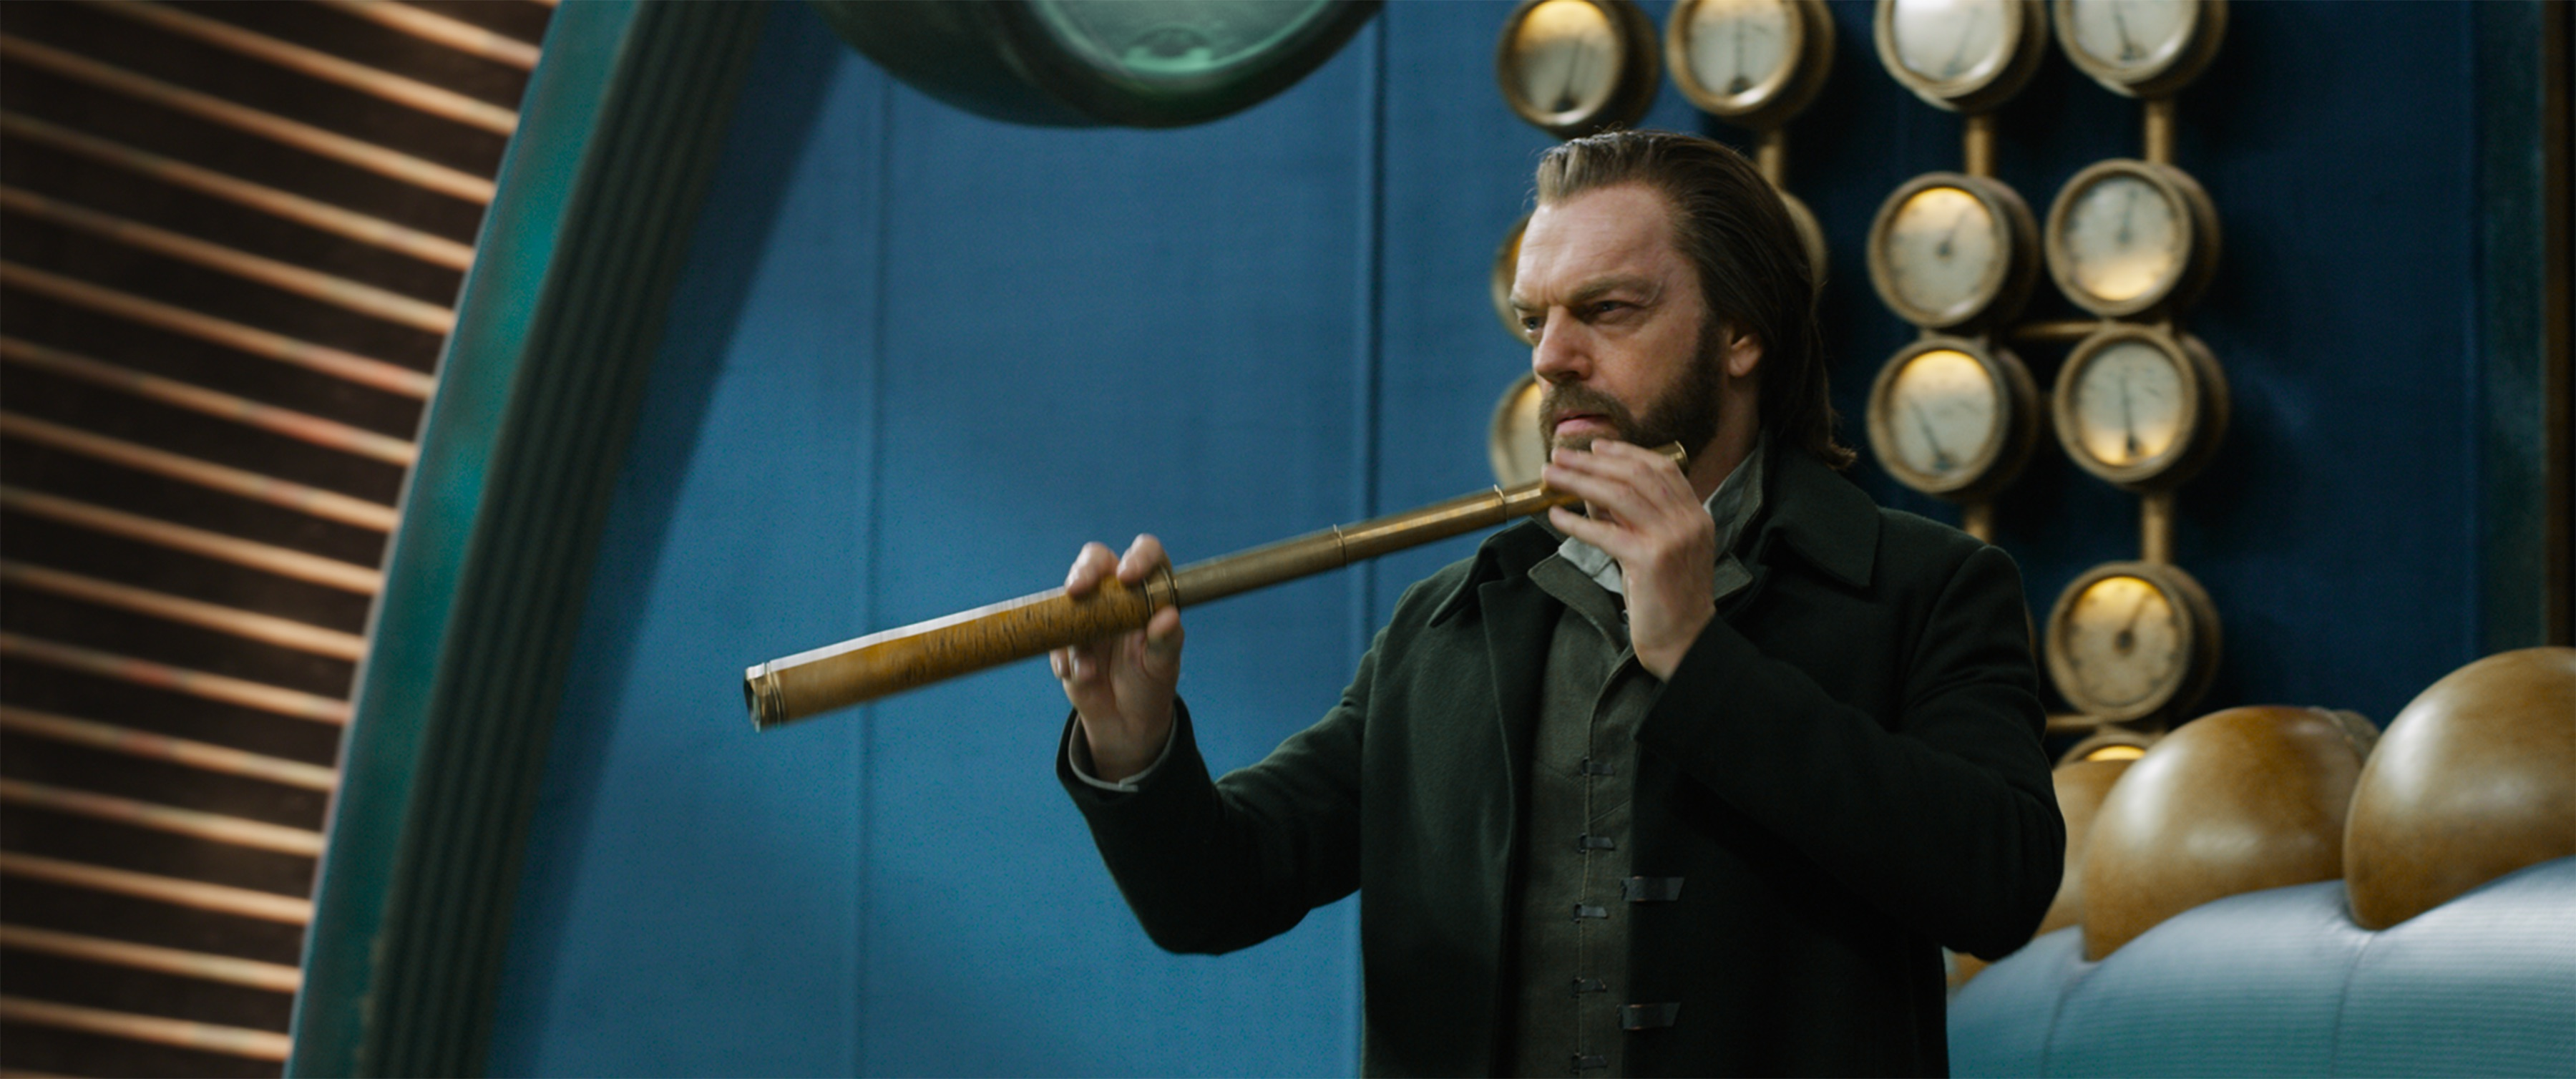 mortal engines hugo weaving with big pipe images